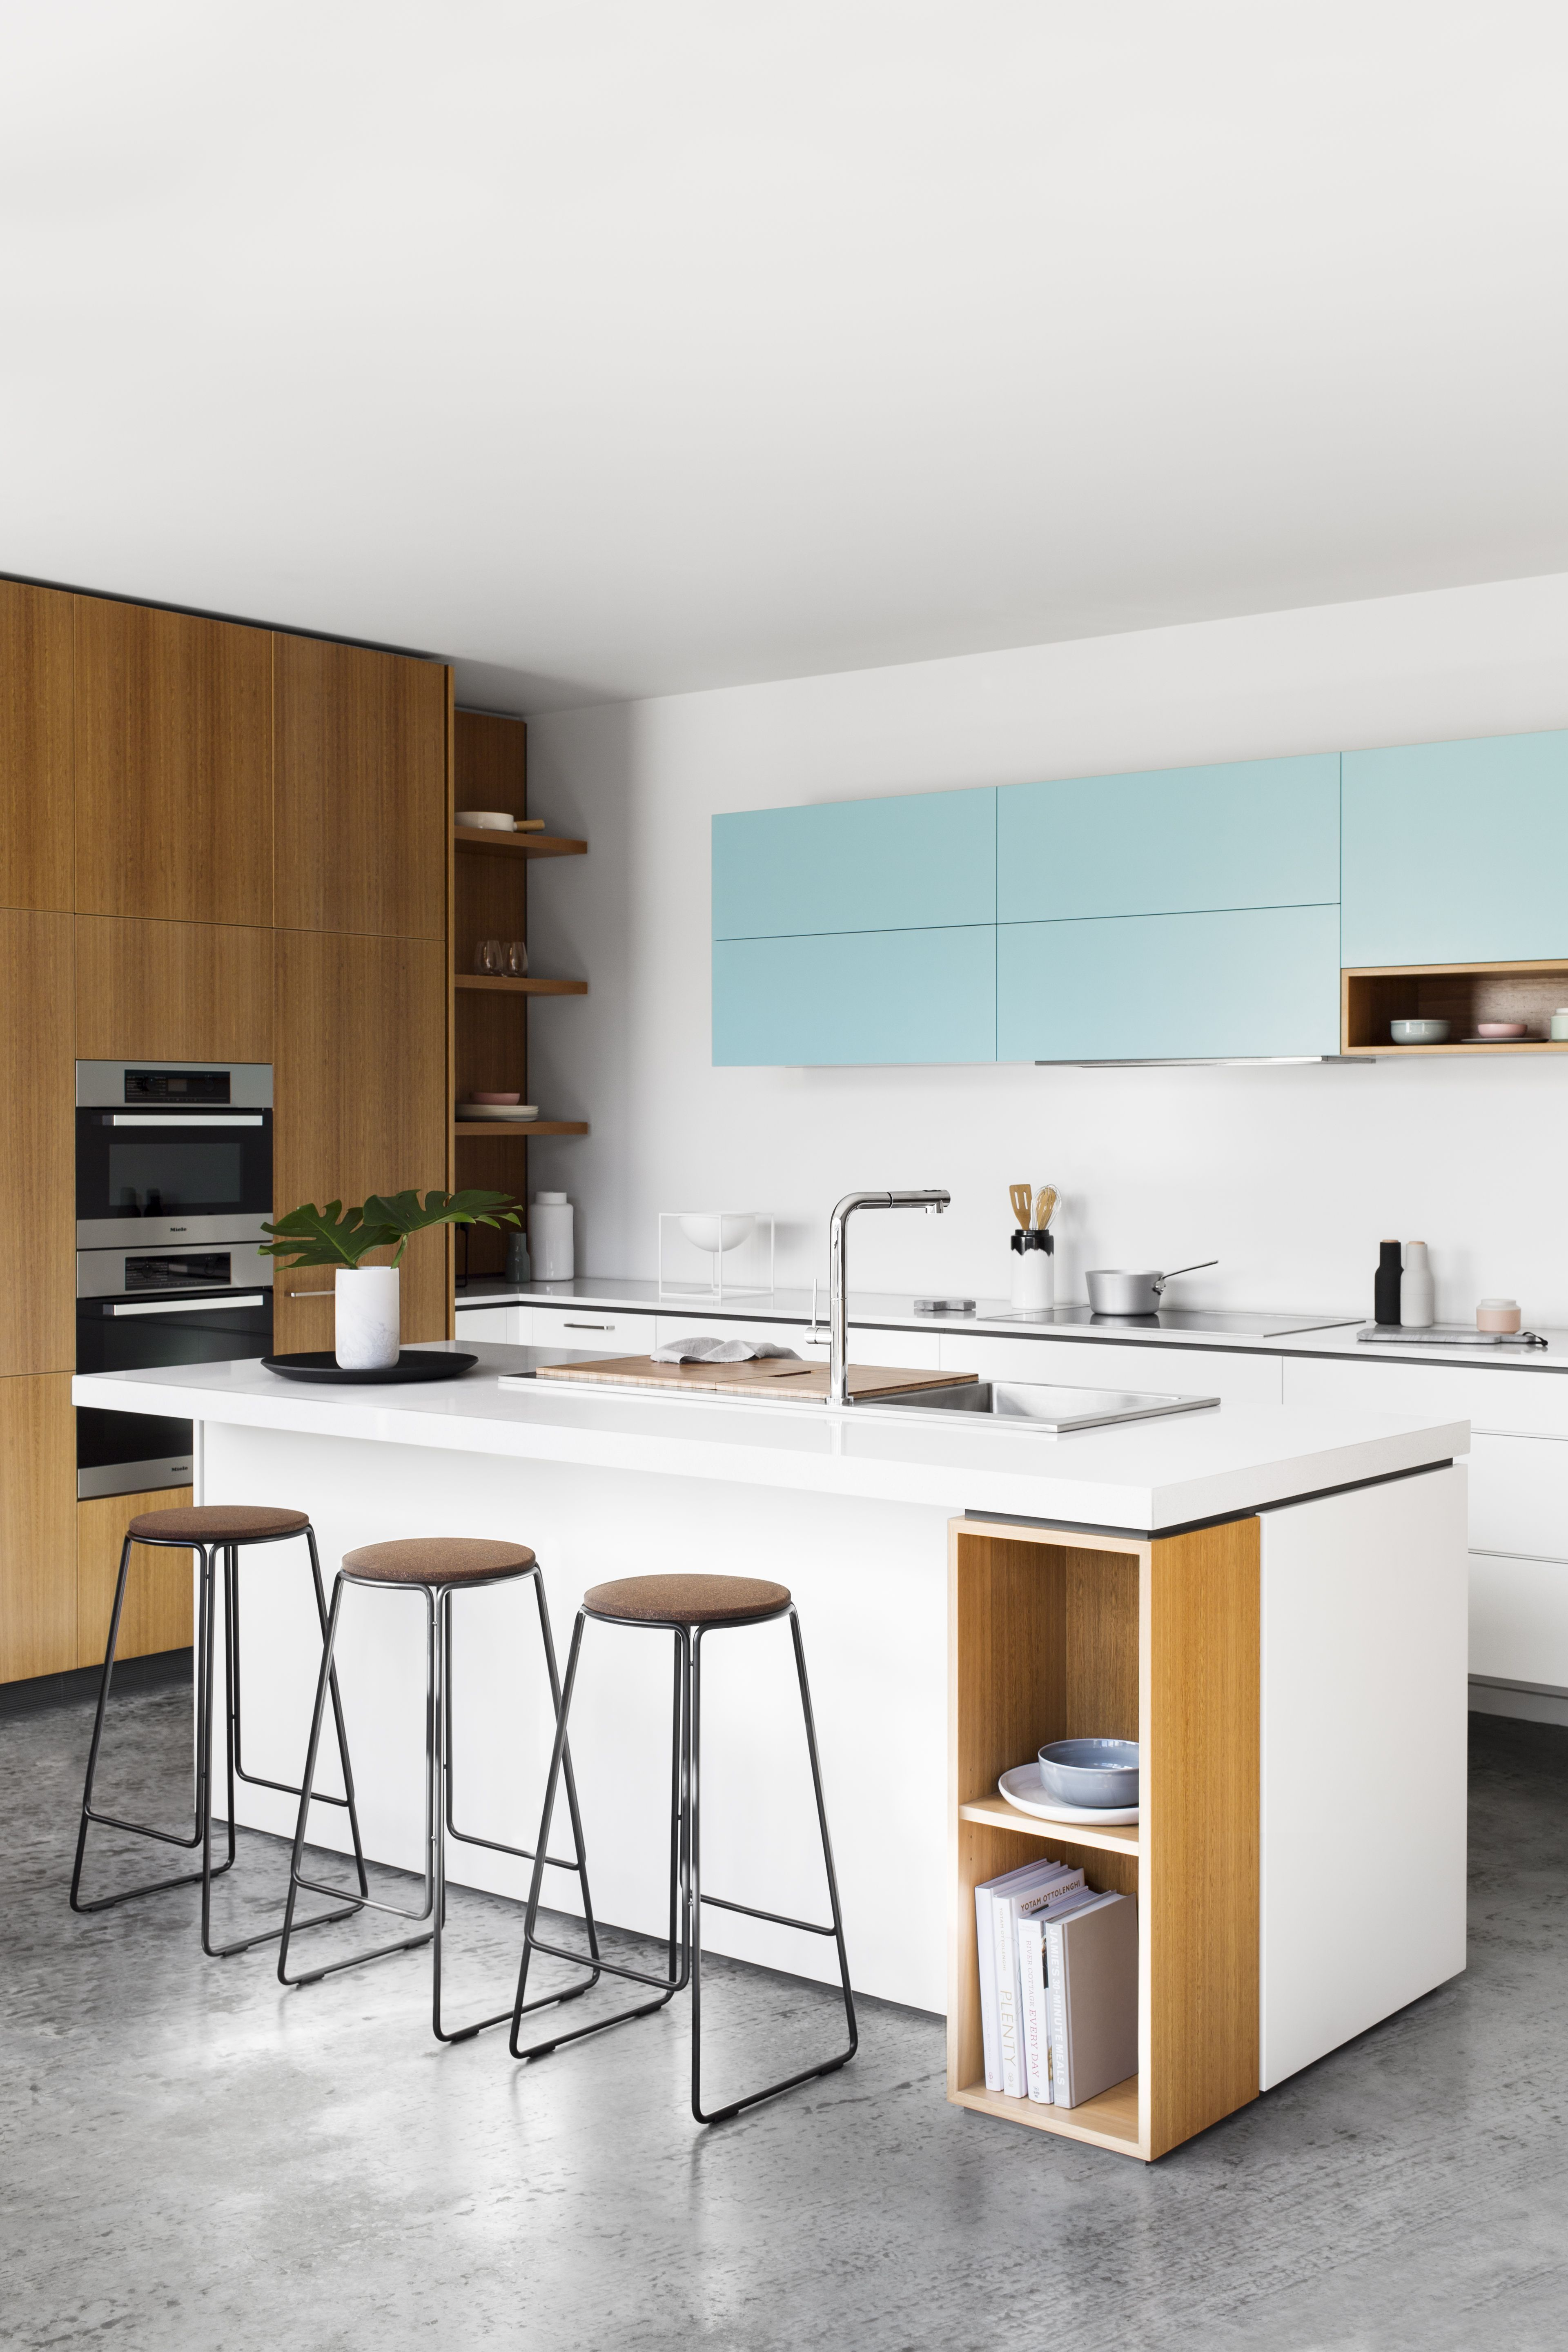 Kitchen renovation ideas to inspire you in the new year kitchen